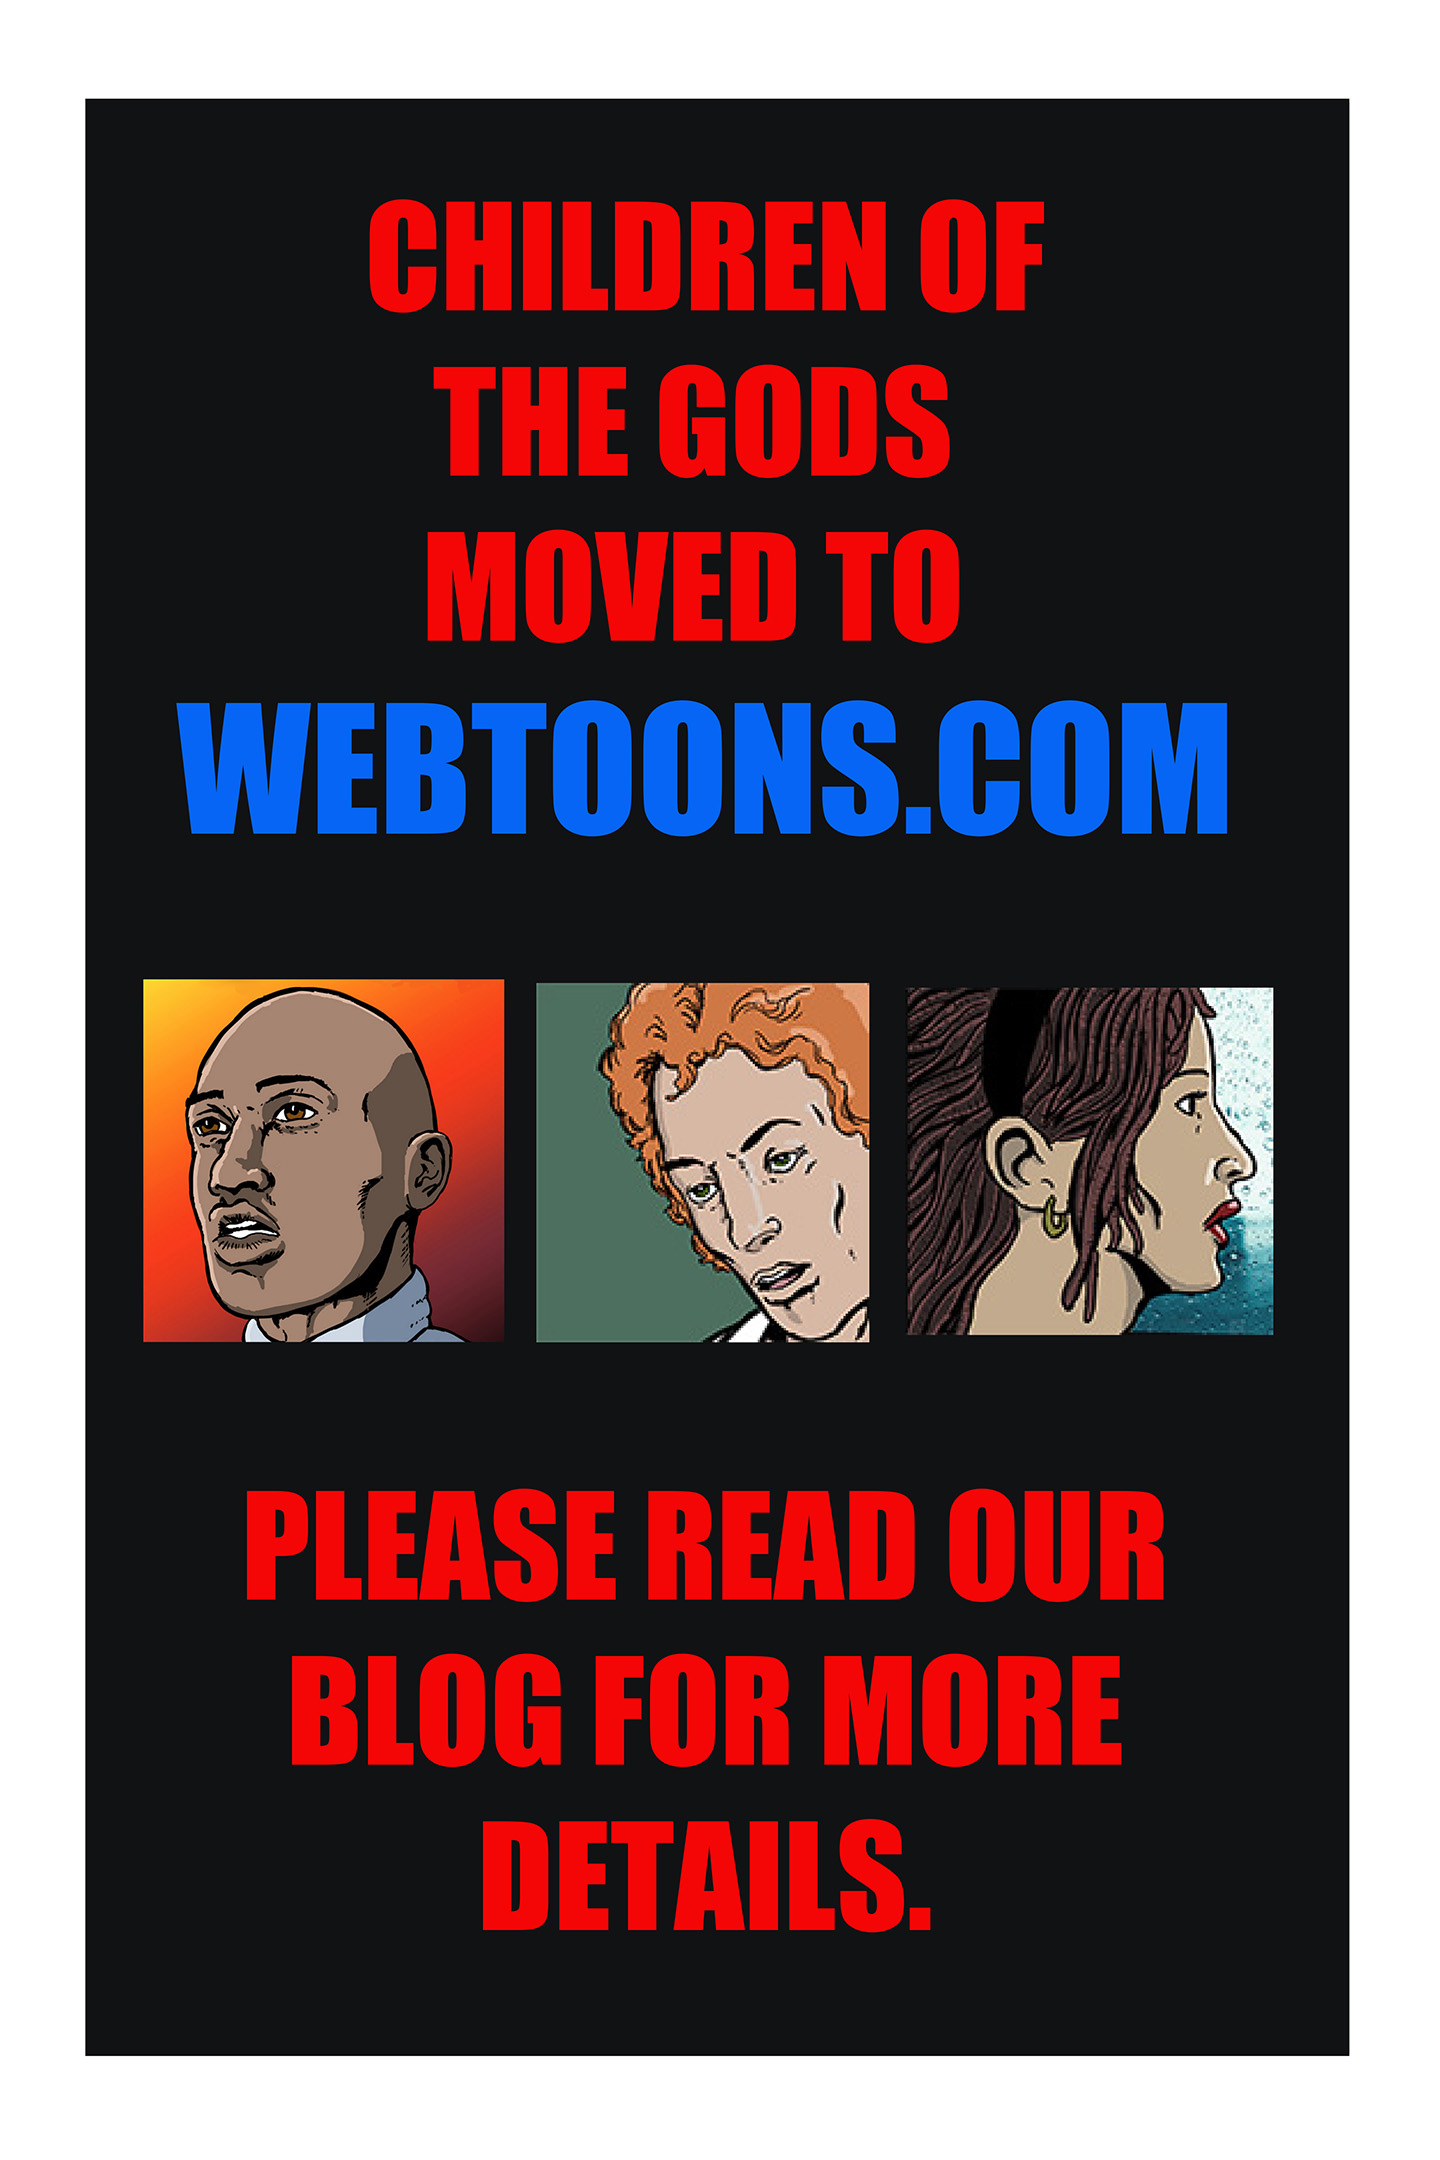 Children of the Gods has moved to Webtoons.com